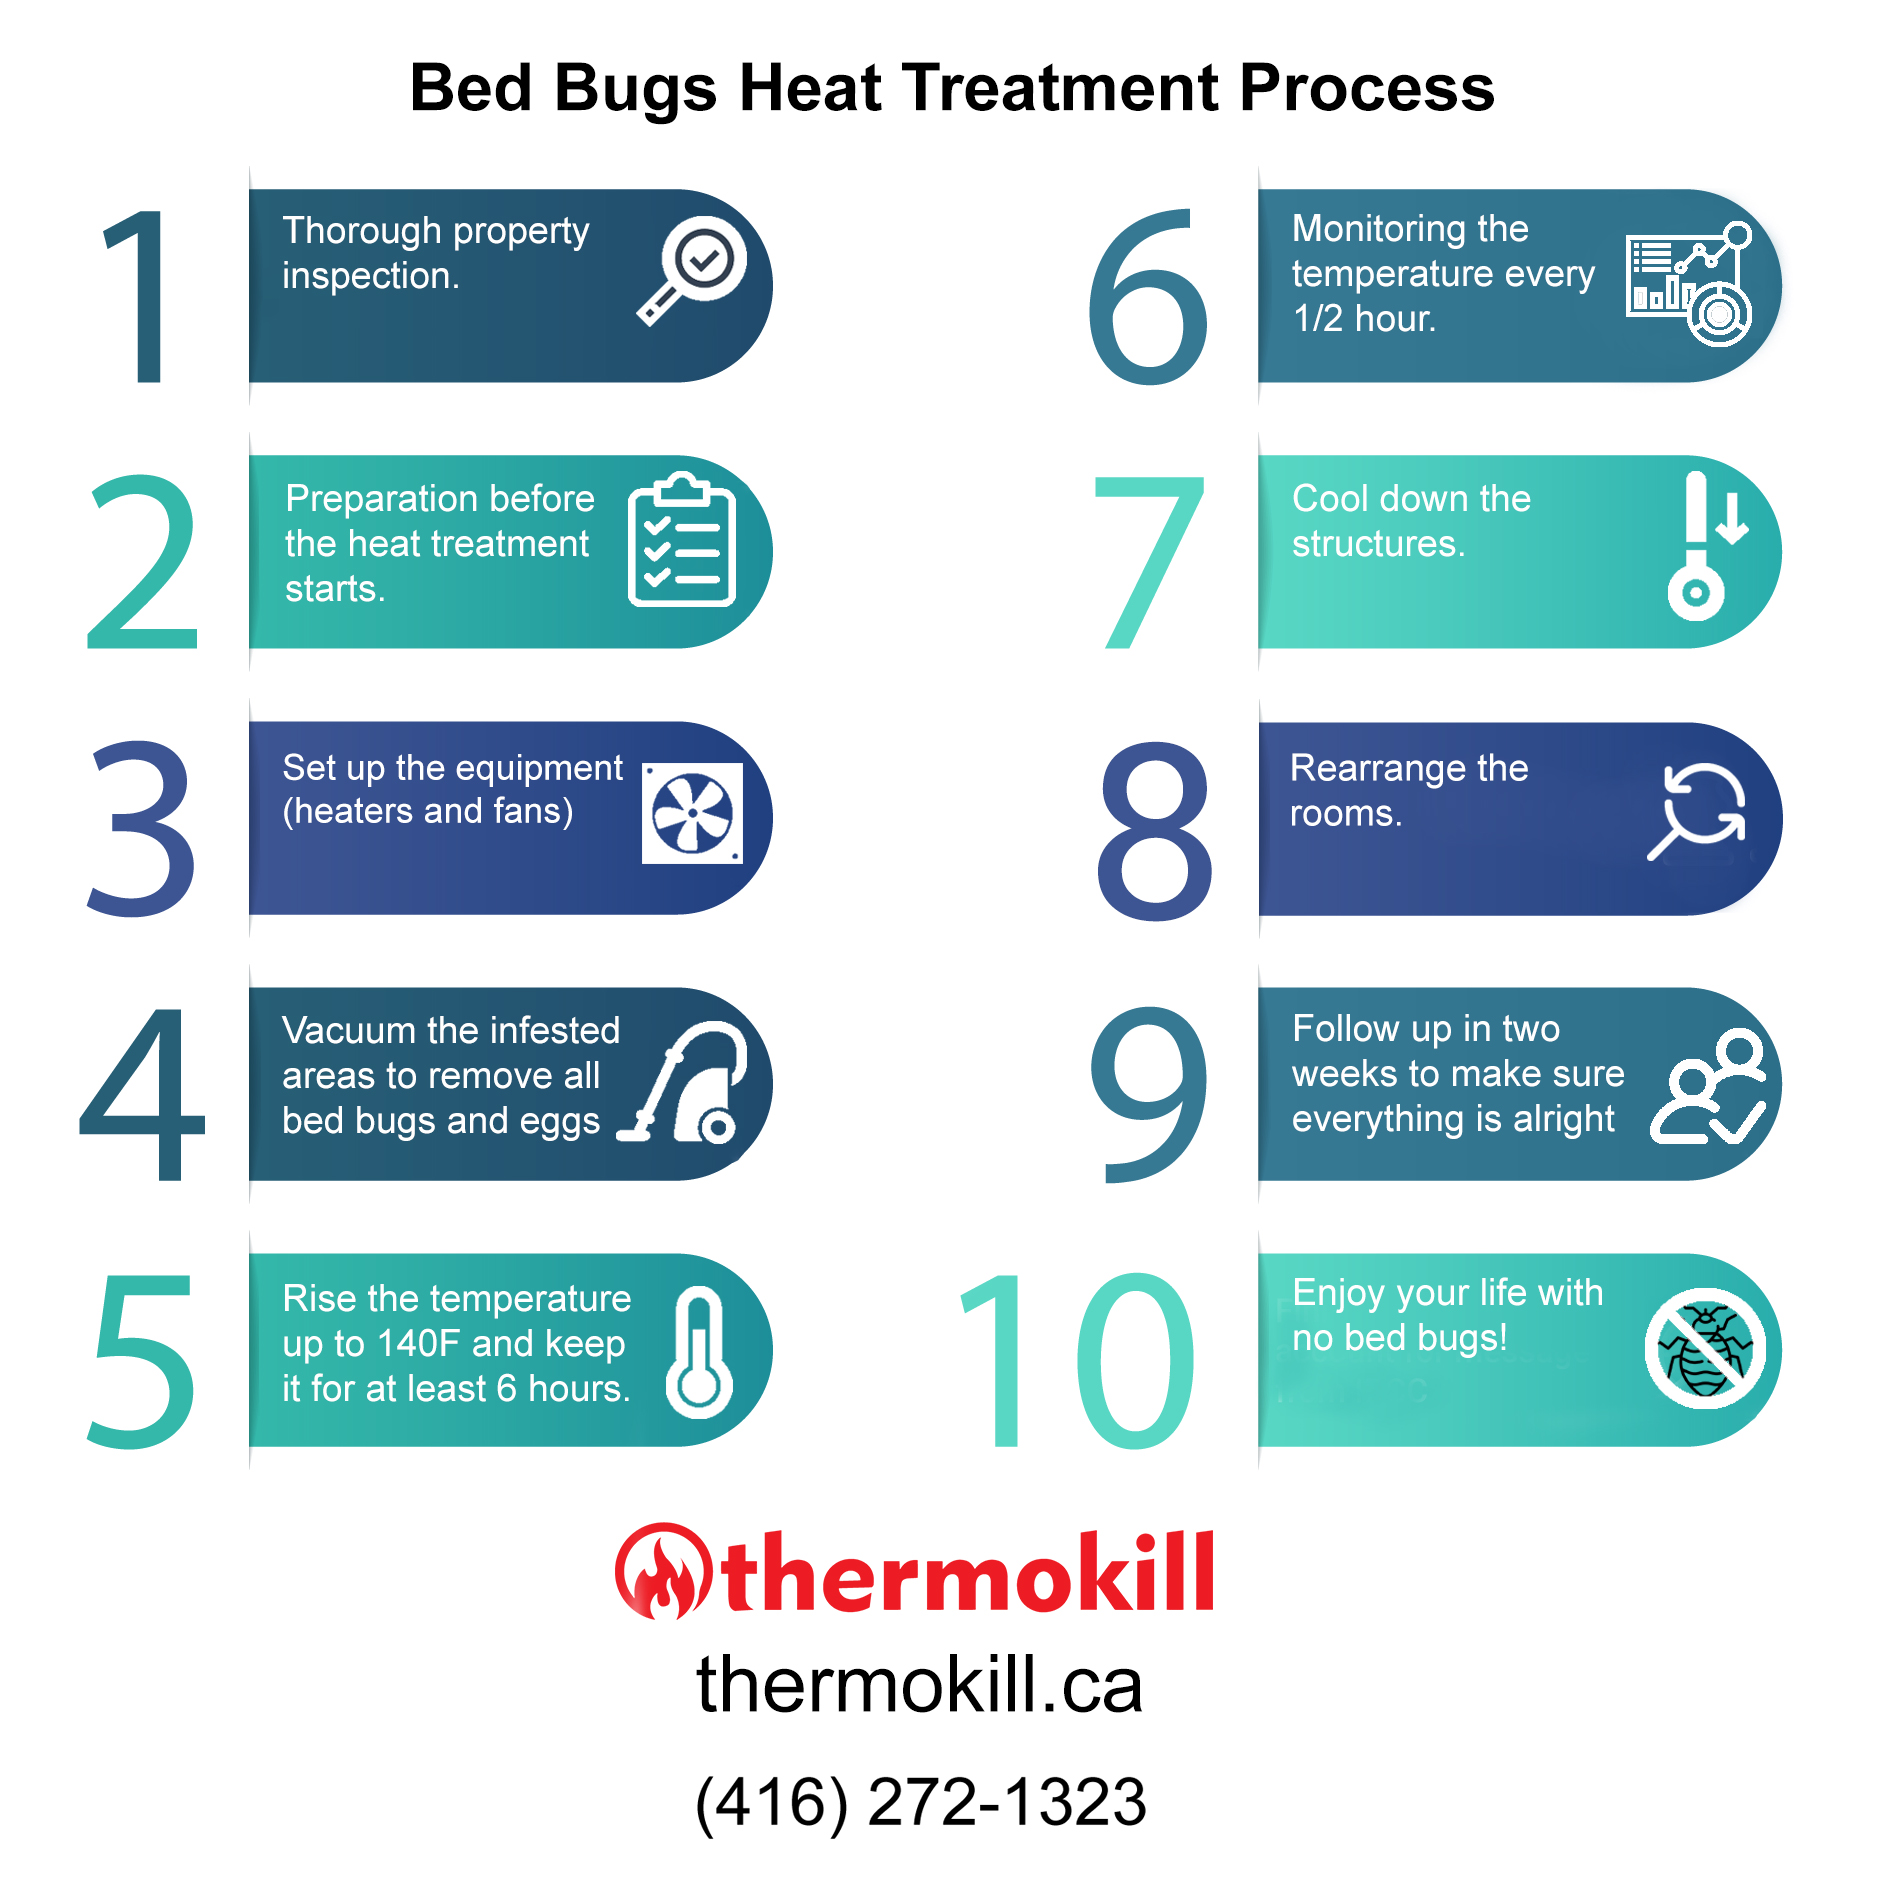 Infographic-Thermokill-Bed-Bug-Heat-Treatment